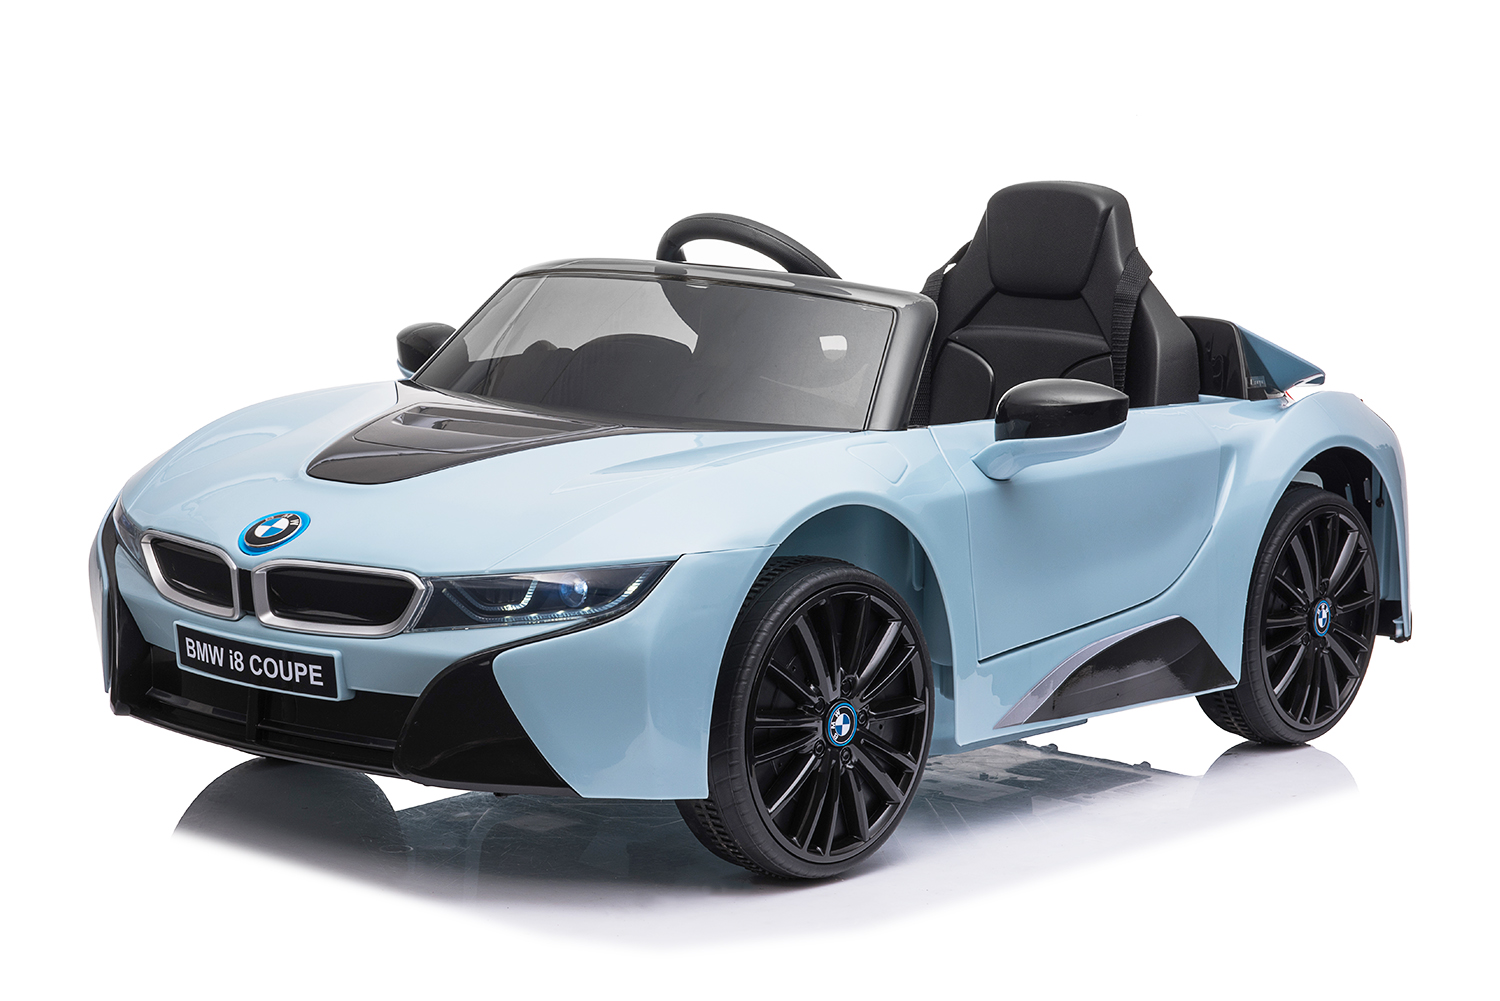 BMW Kinderauto i8 Coupe